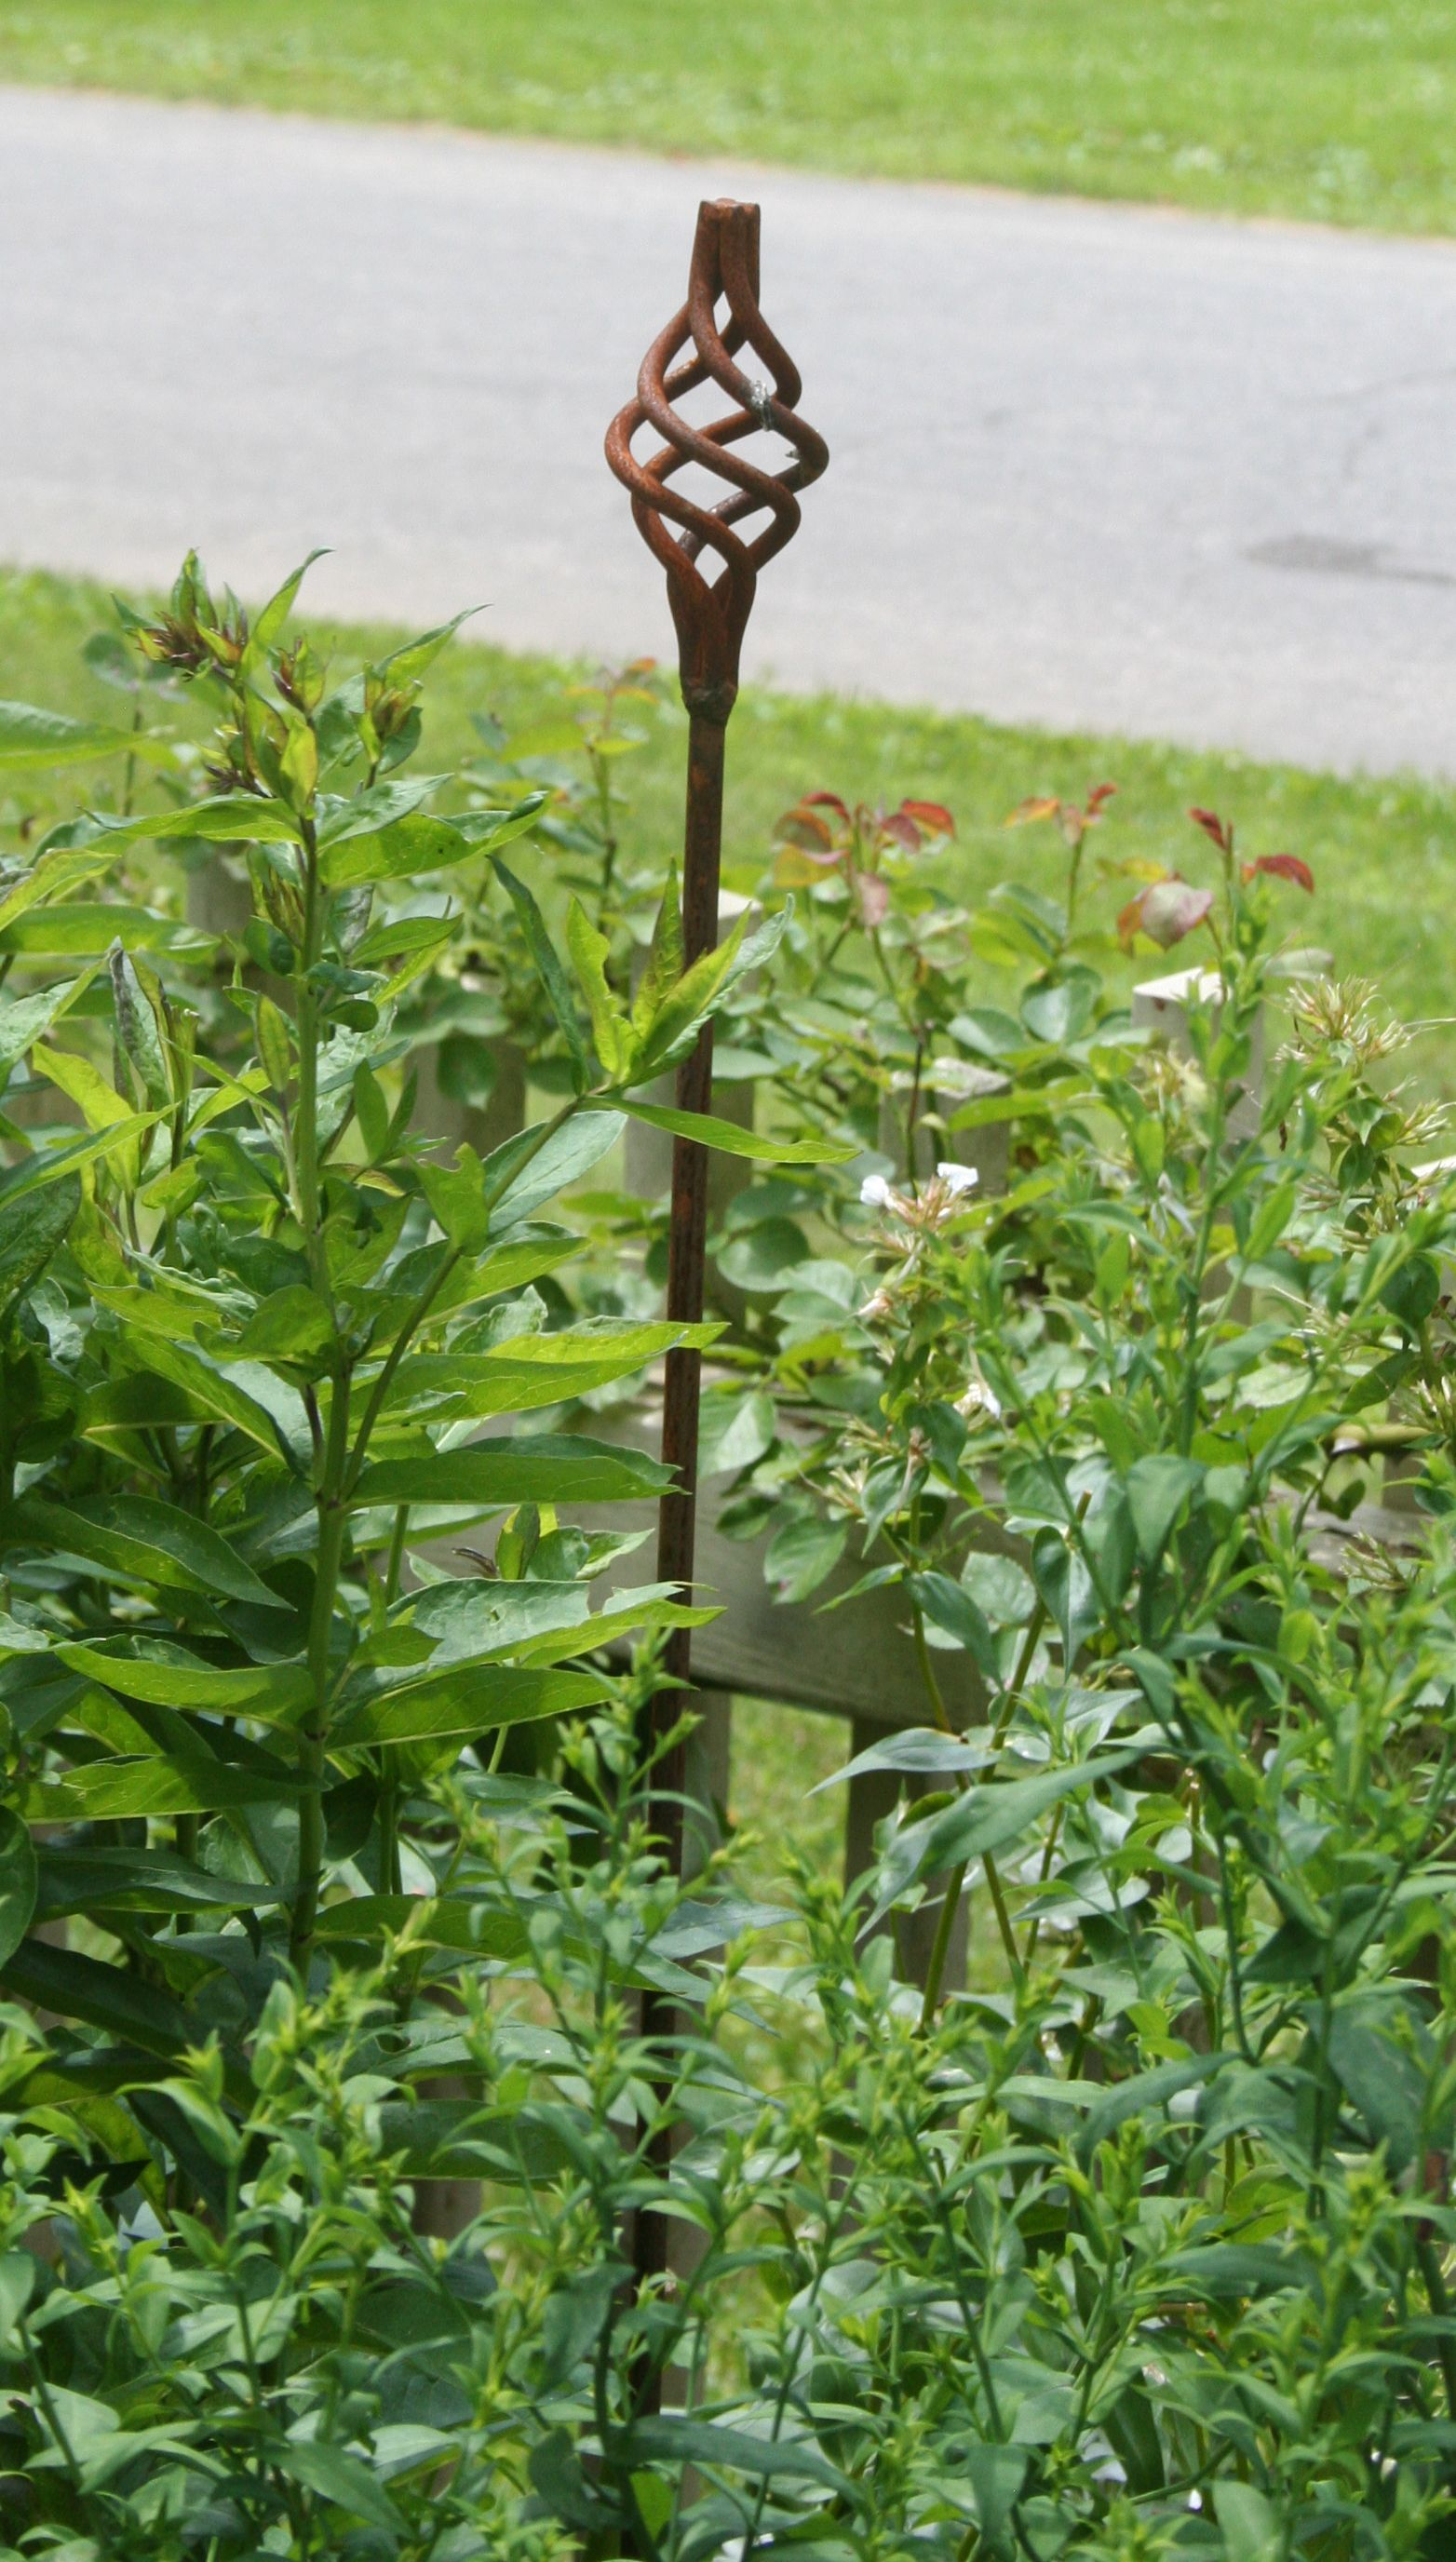 iron spiral stakes the only thing in the garden that challenges